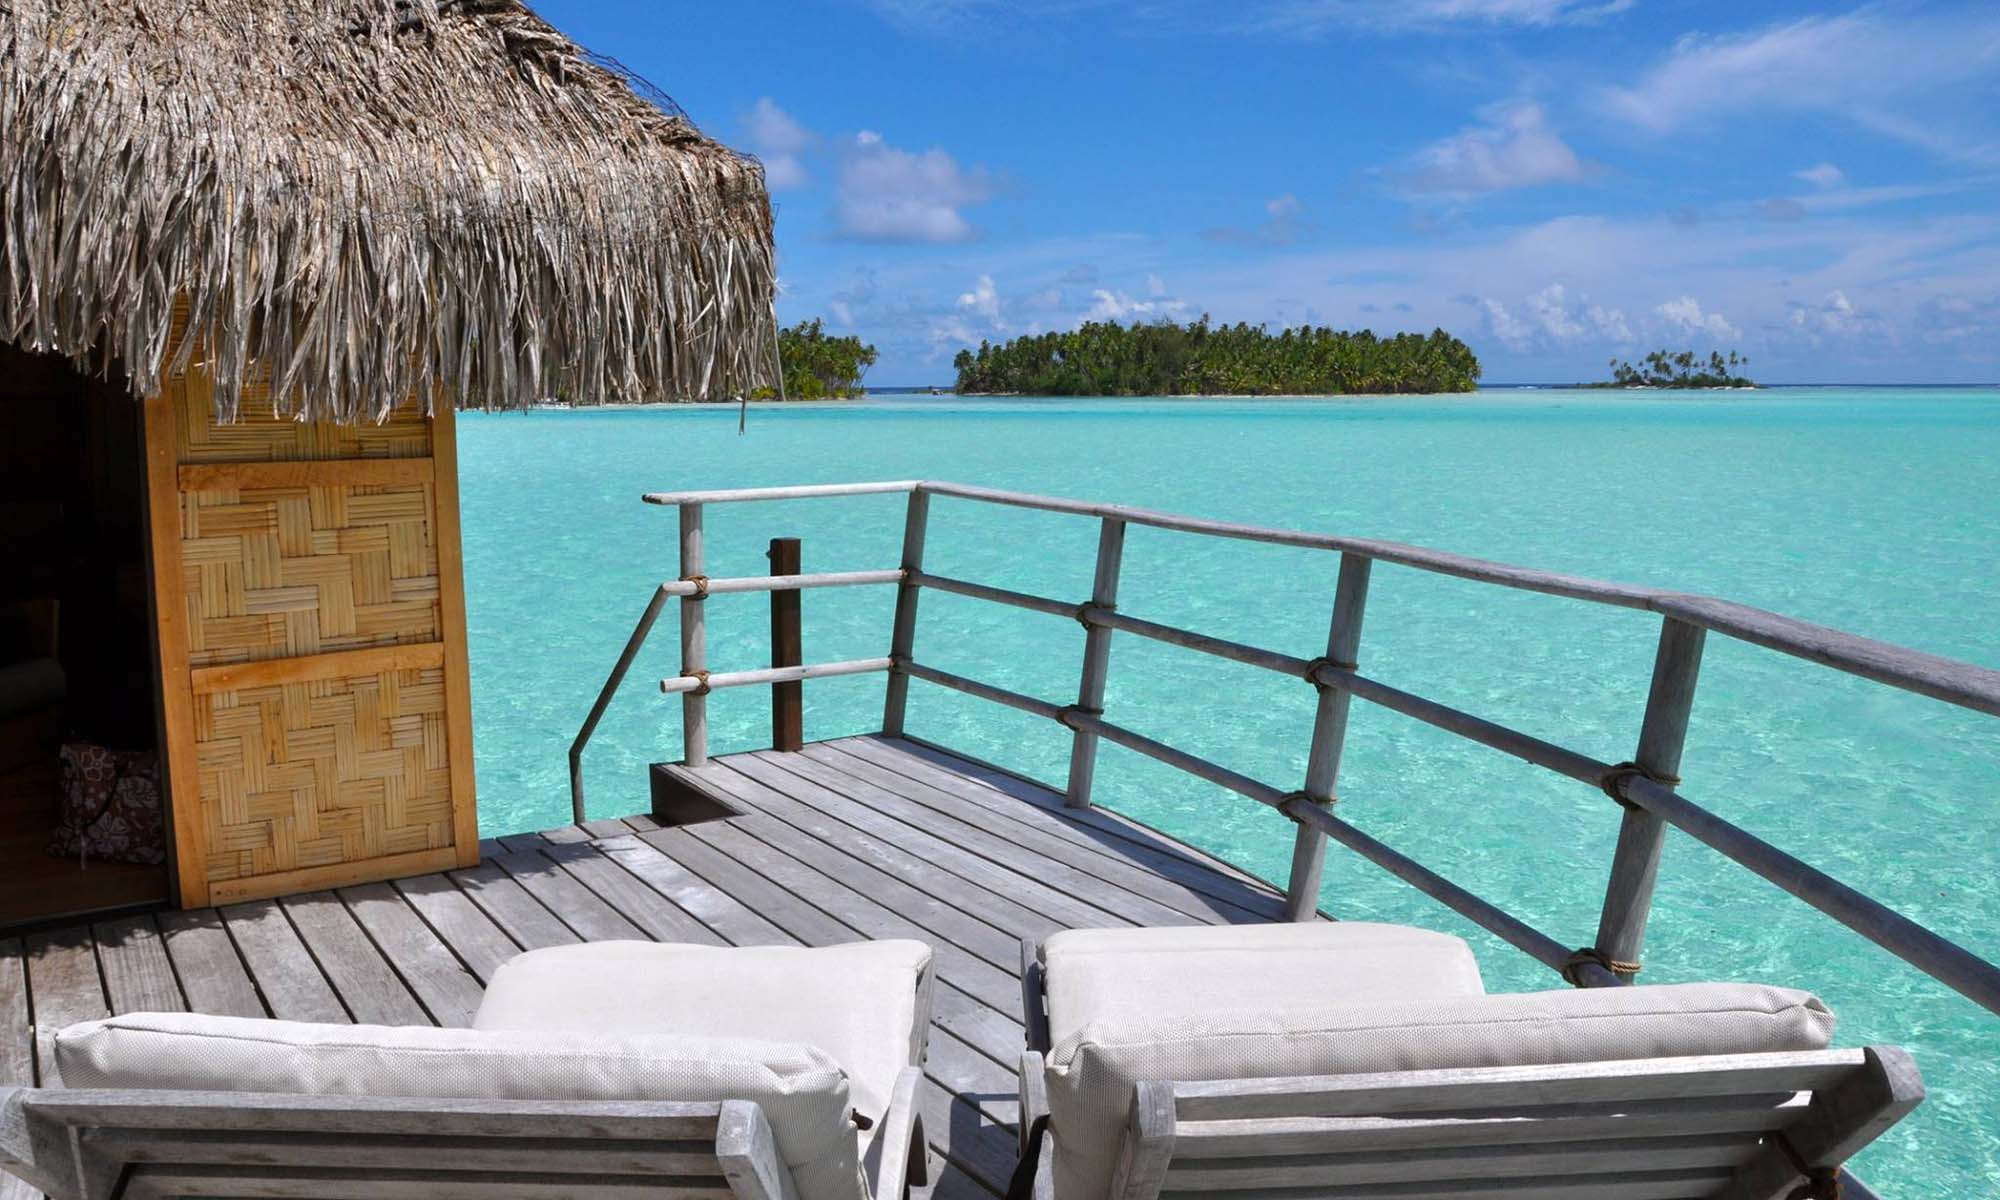 Le Taha'a Island Resort & Spa, Overwater Bungalow View